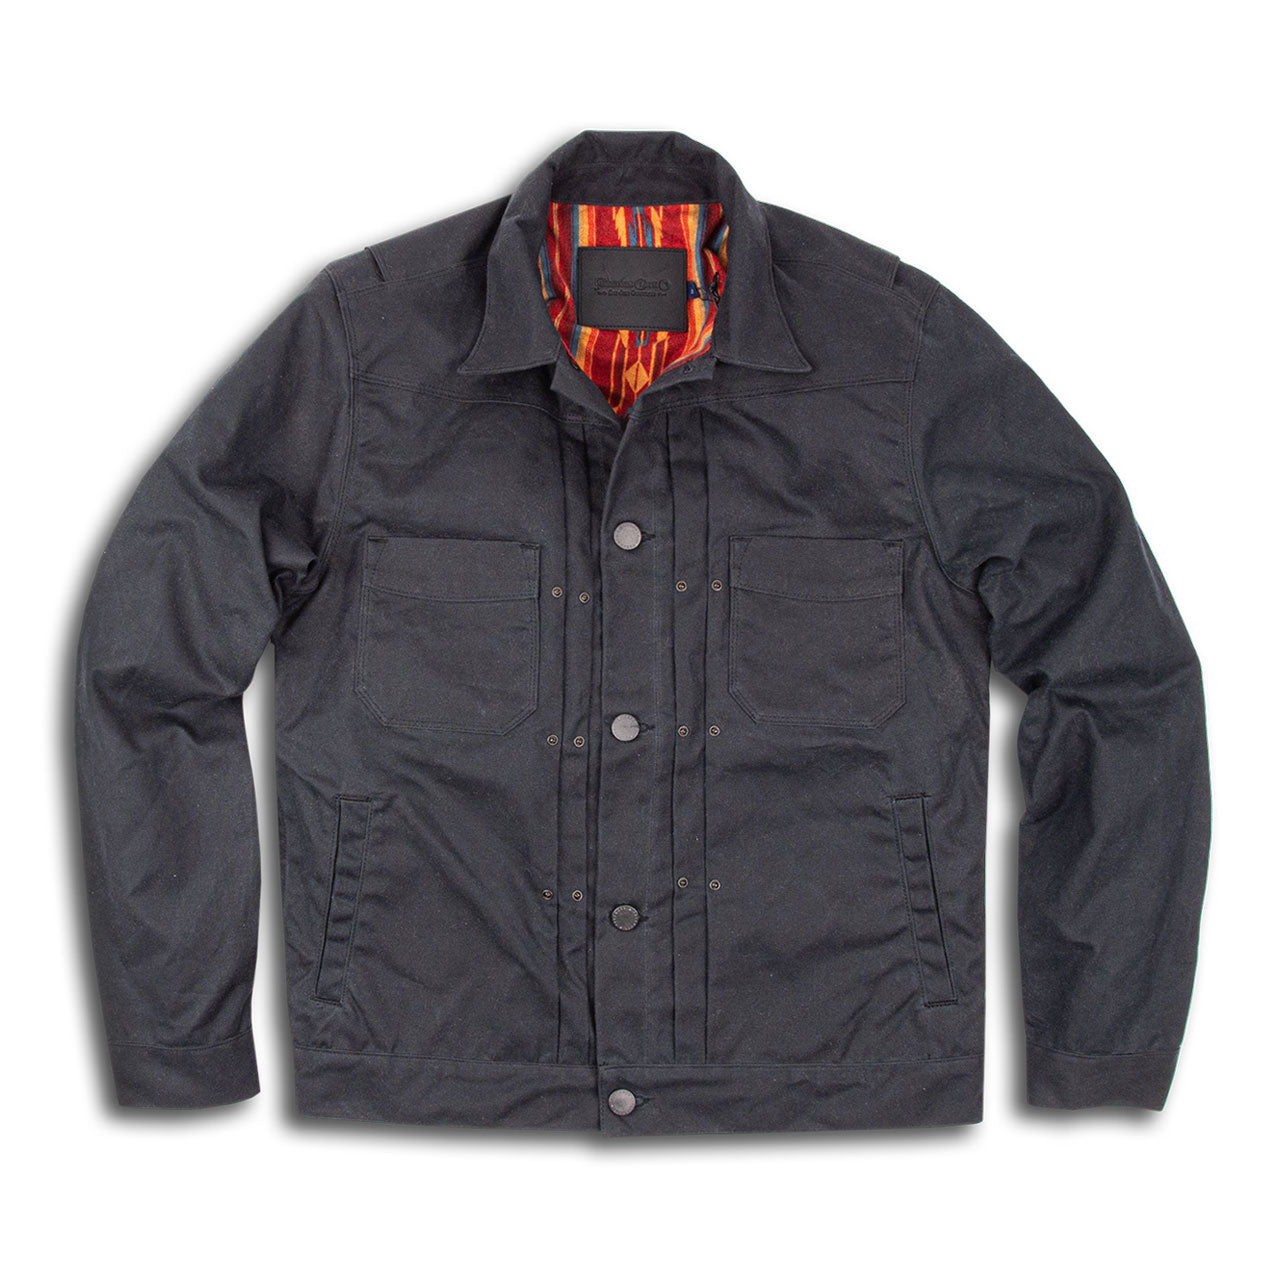 Freenote Cloth Riders Jacket